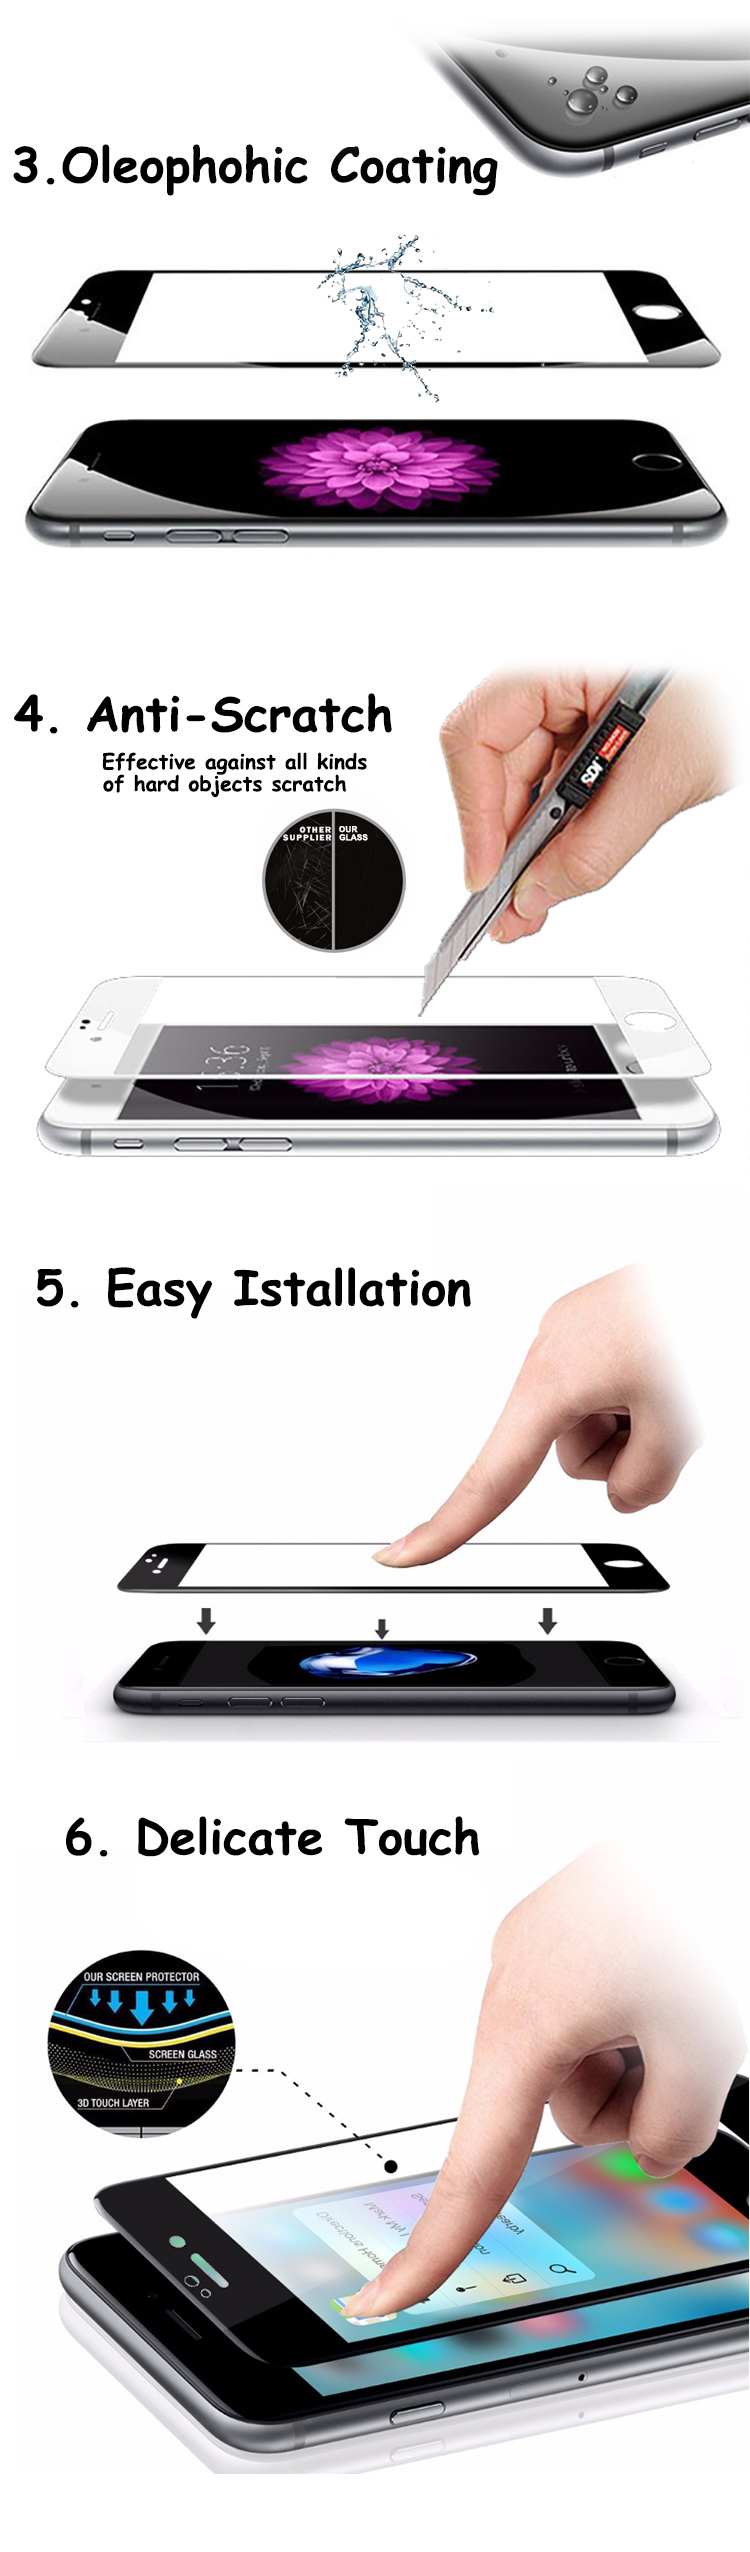 Oil resistant simple 9h screen protector for iphone 6 / 6s film 3d 0.33mm screen protector tempered glass